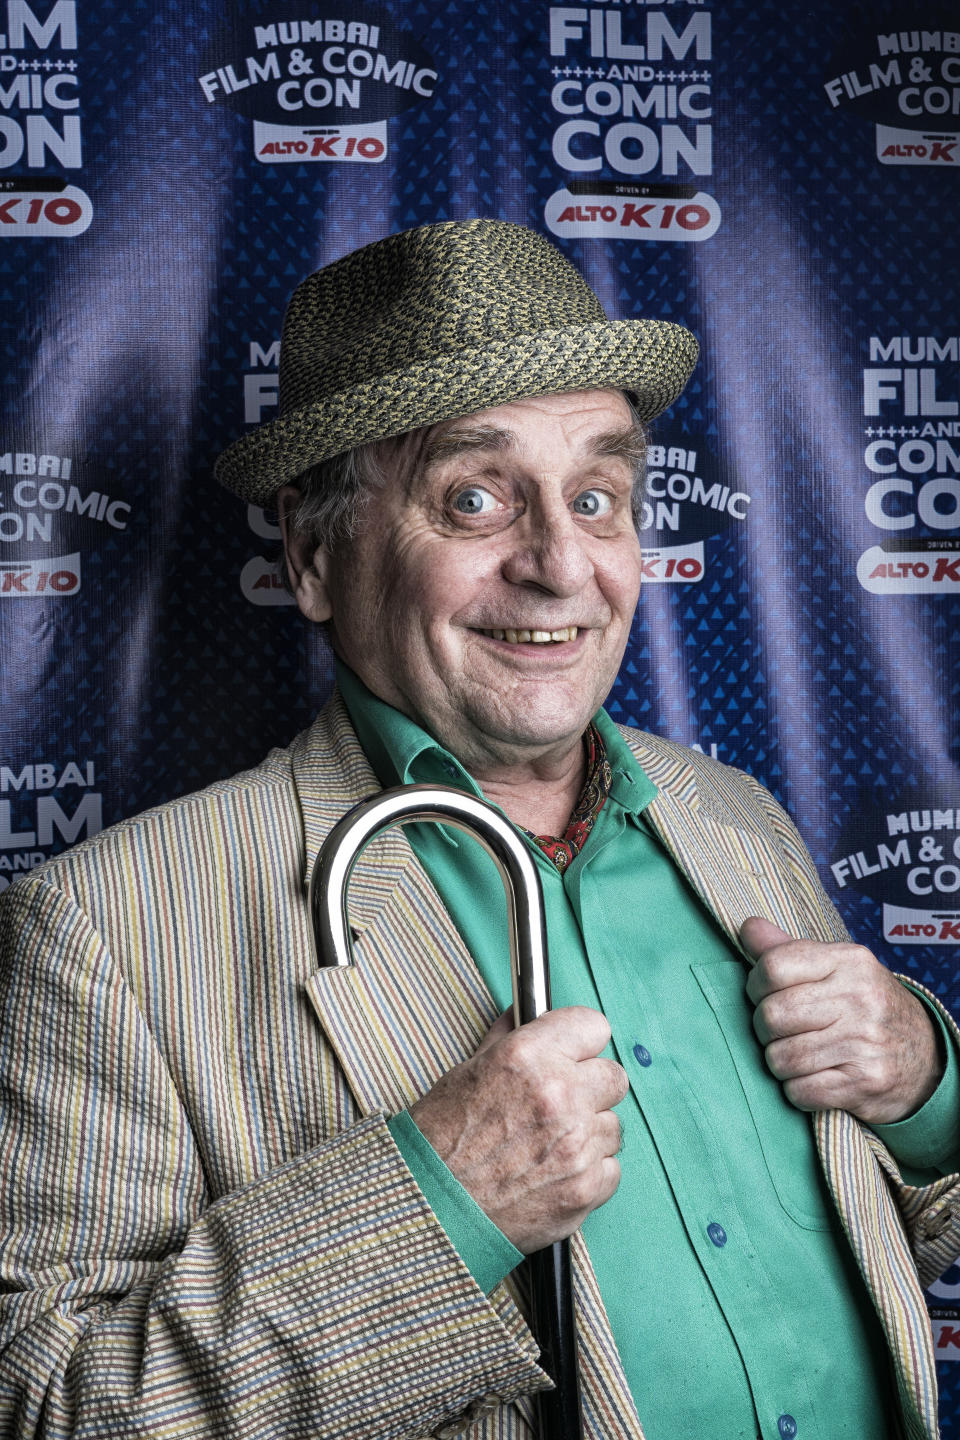 MUMBAI, INDIA - DECEMBER 20, 2015: Scottish actor Sylvester McCoy at the fifth annual edition of Mumbai Film & Comic Con at Goregaon,  on December 20, 2015 in Mumbai, India. (Photo by Aalok Soni/ Hindustan Times via Getty Images)